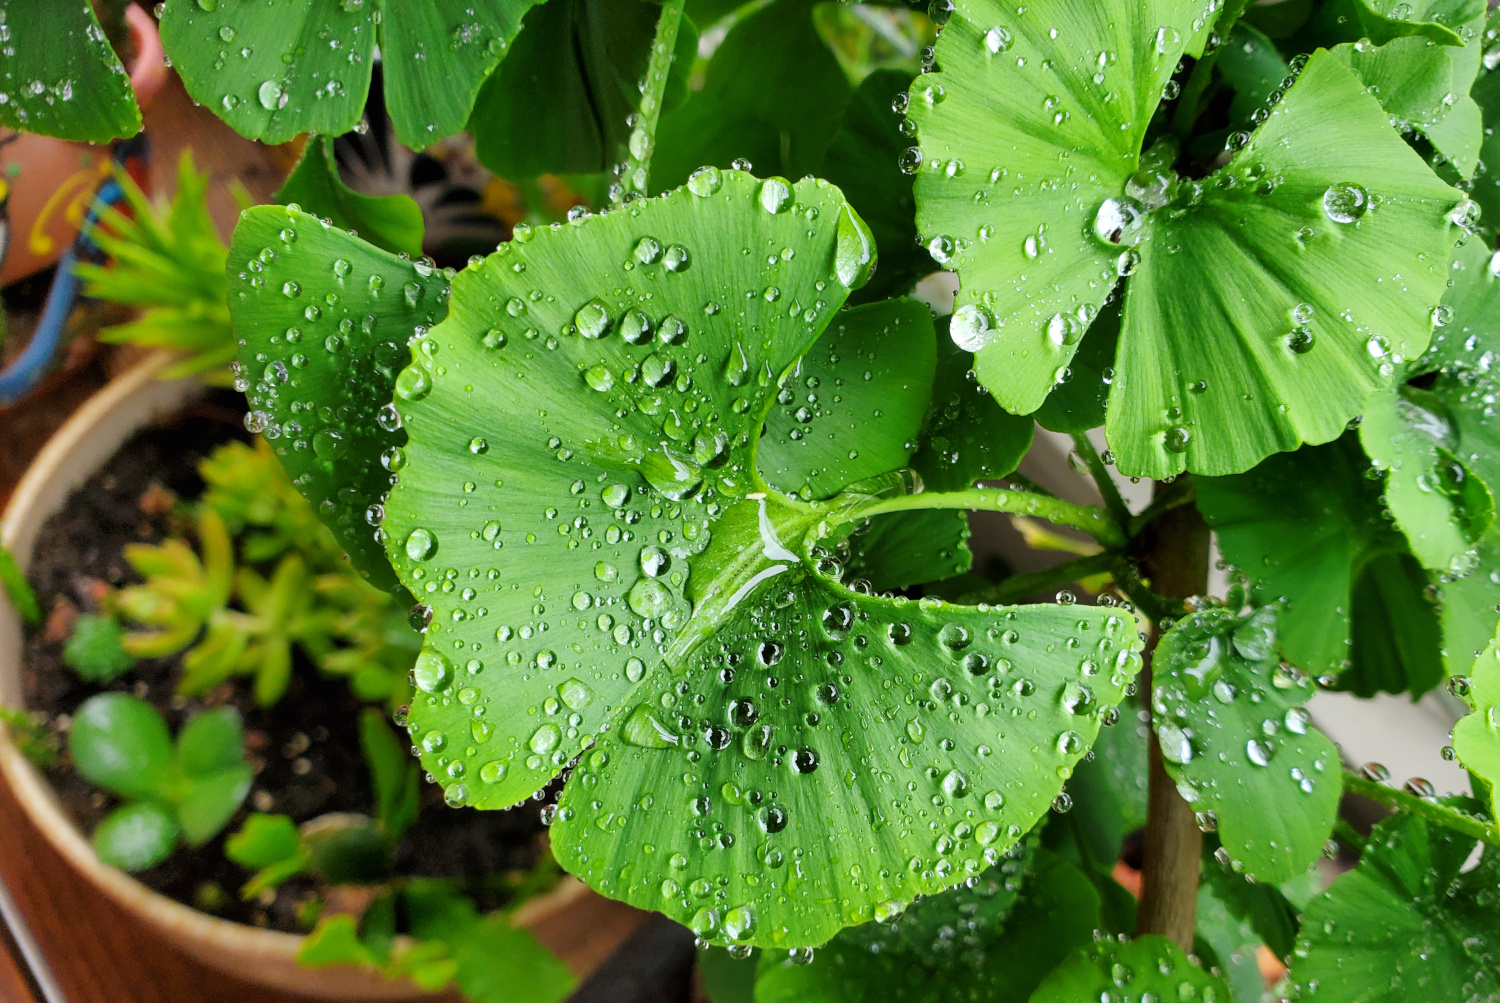 The ginkgo biloba leaves are covered in water droplets after a morning watering